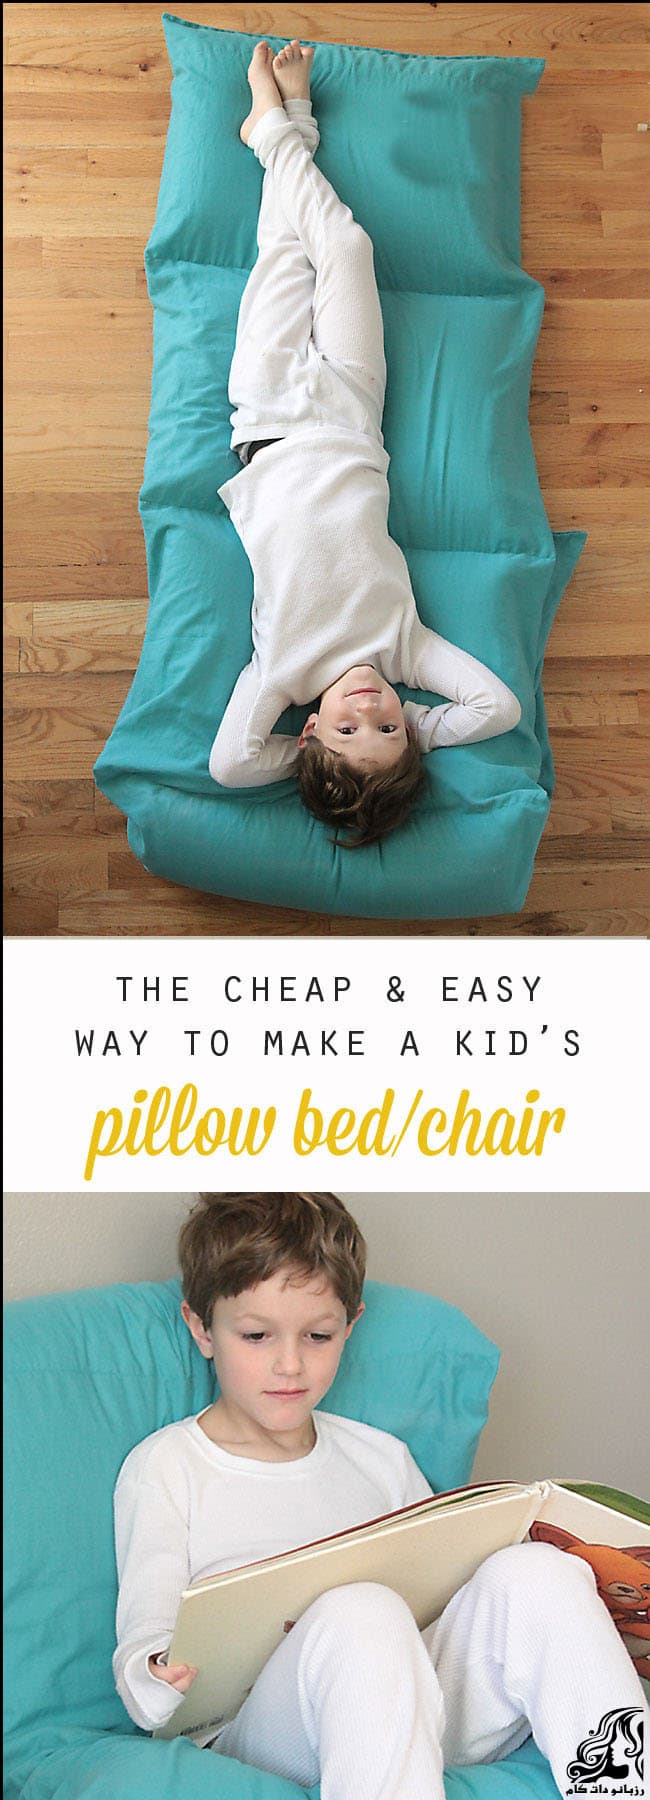 http://up.rozbano.com/view/2868163/kids%20pillow%20bed-10.jpg